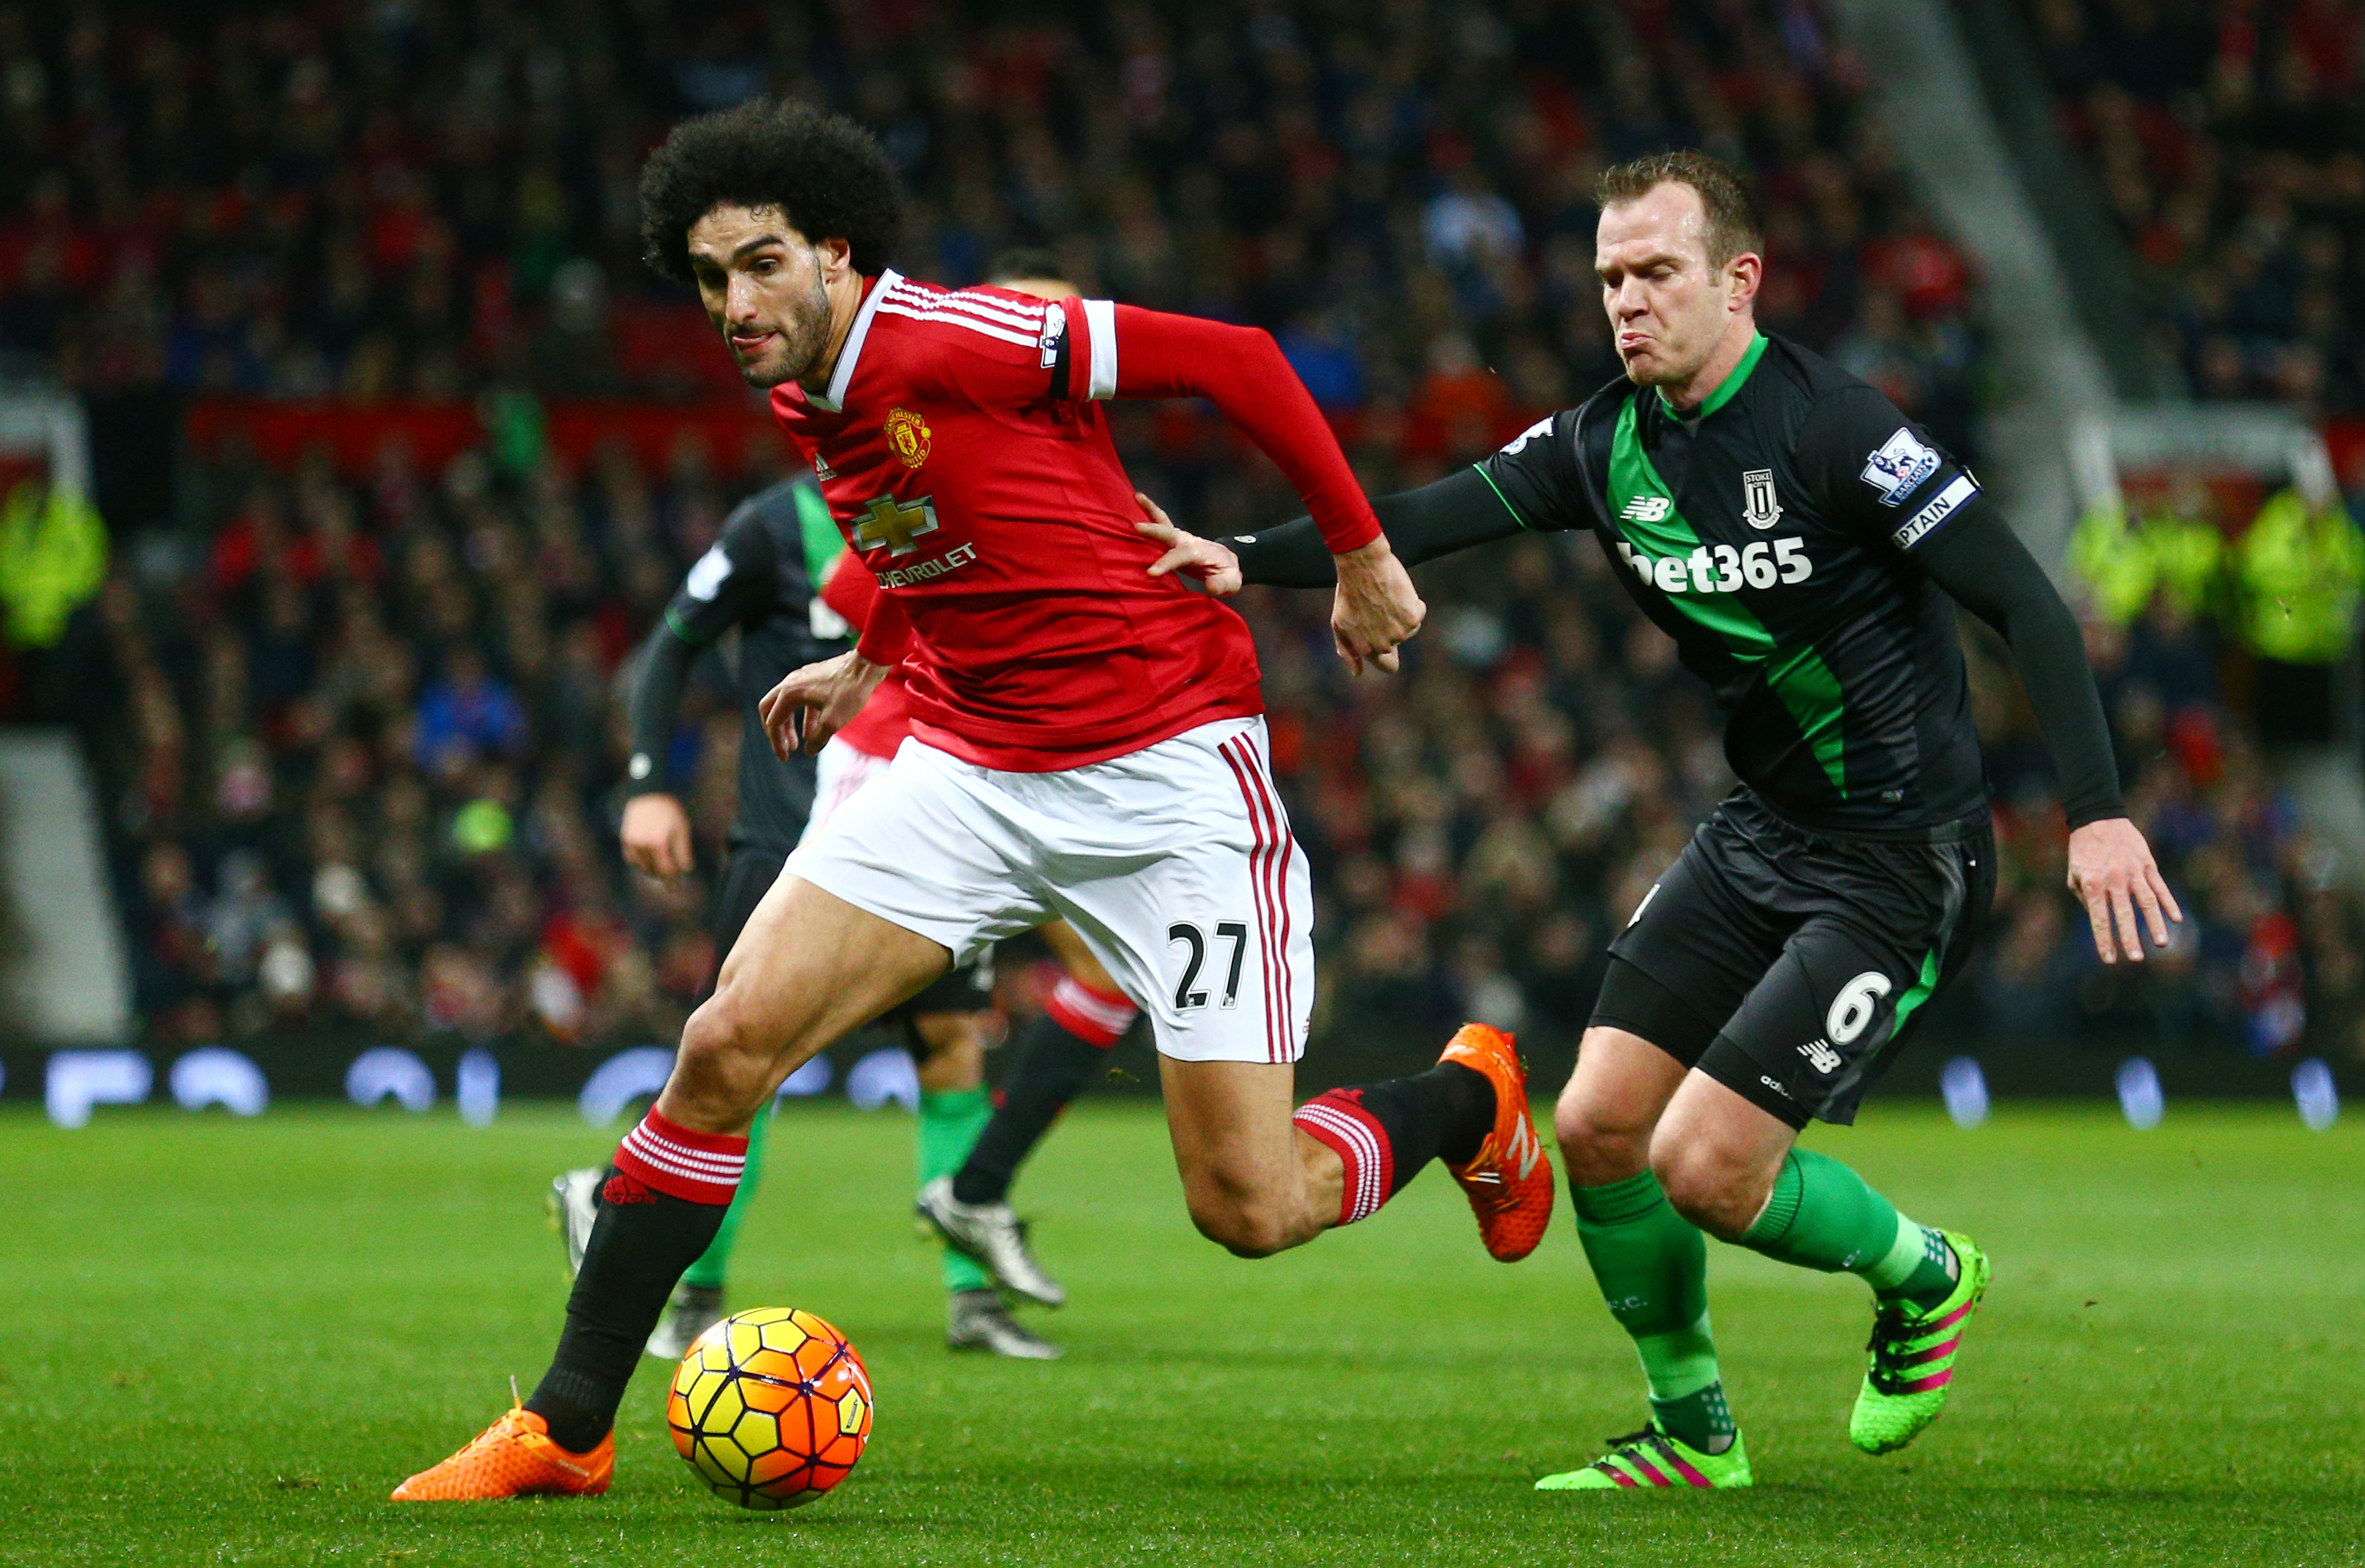 Player Ratings: Manchester United 3-0 Stoke City